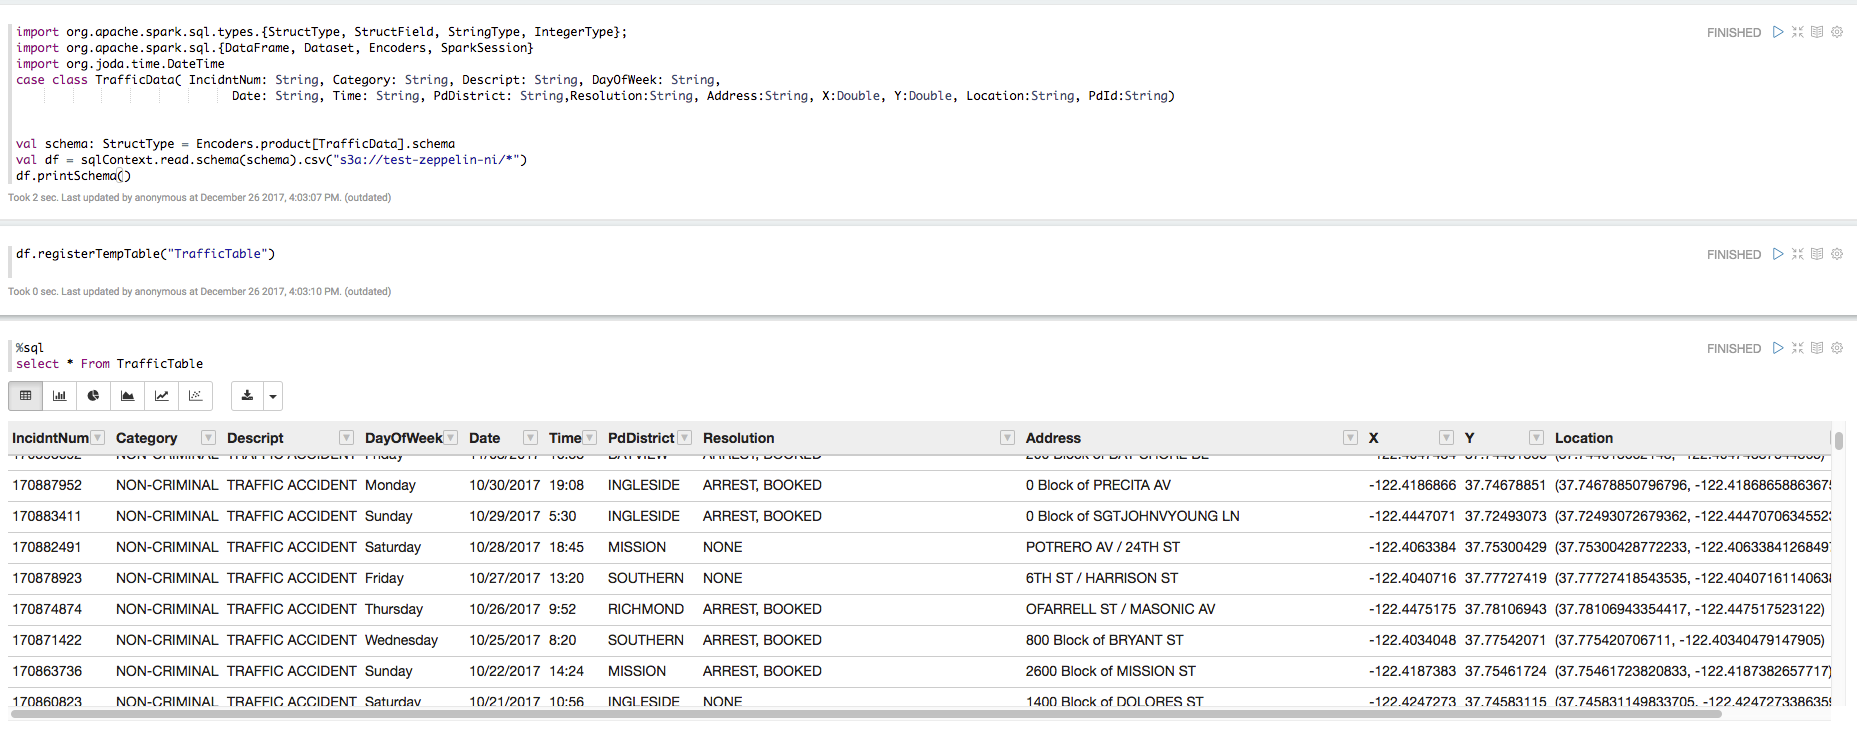 Querying our Data Lake in S3 using Zeppelin and Spark SQL